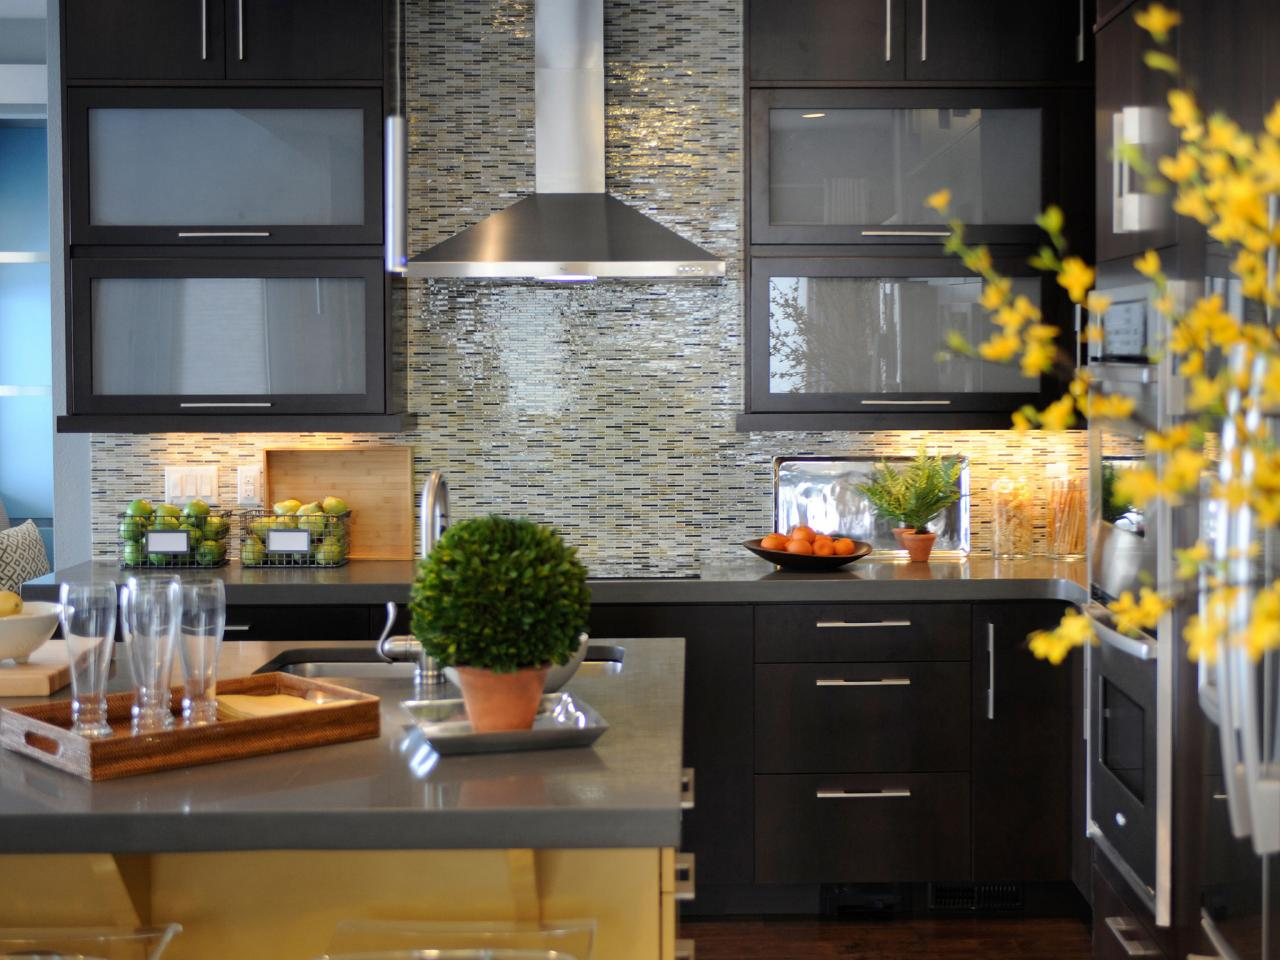 Wonderful Kitchen Design with Dark Counter and Cabinets near Grey Kitchen Tile Ideas and Stunning Range Hood